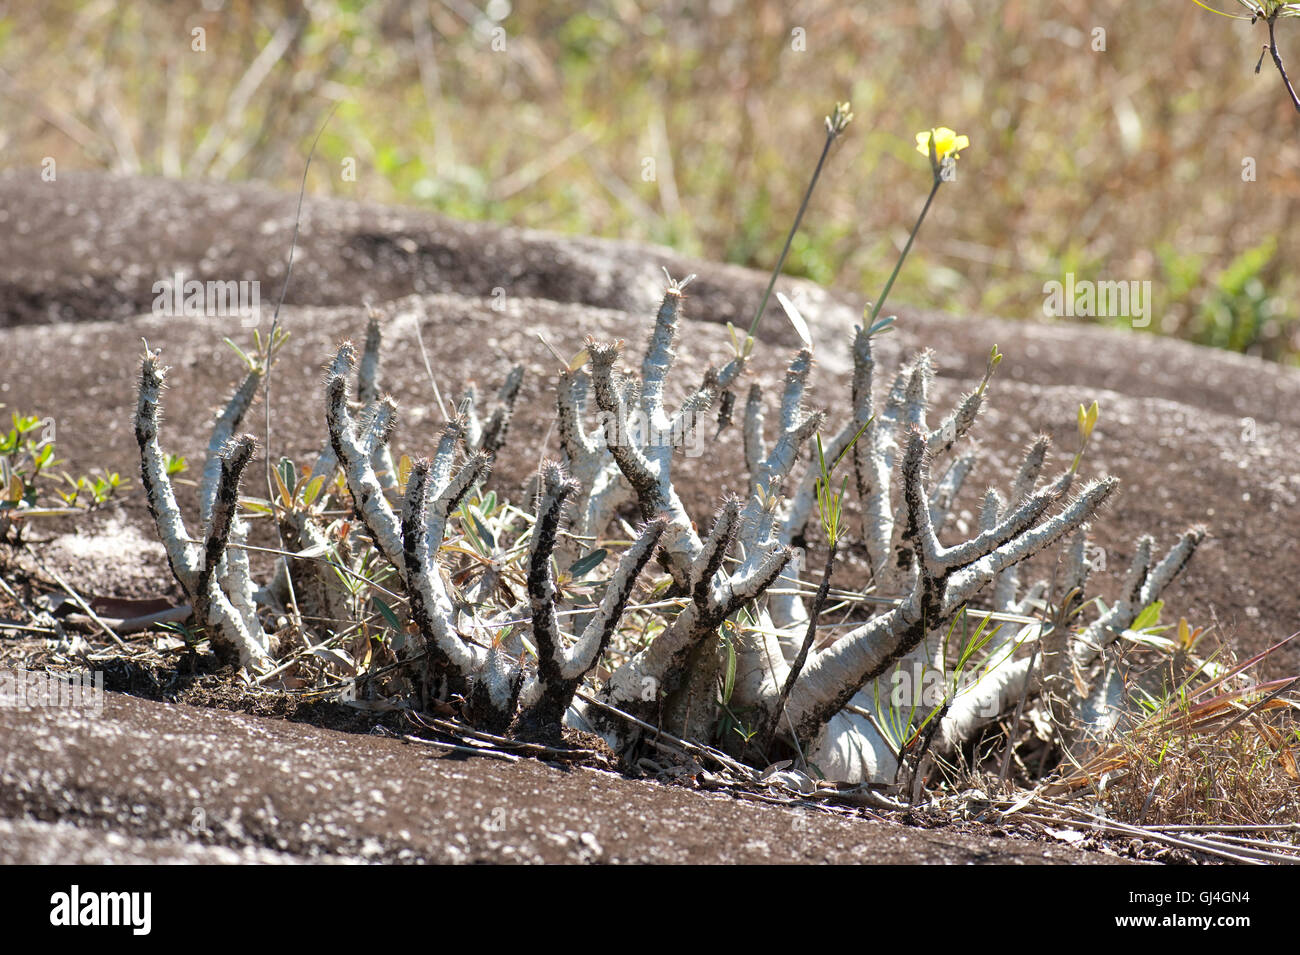 Elephant's foot plant Pachypodium gracilis Madagascar - Stock Image